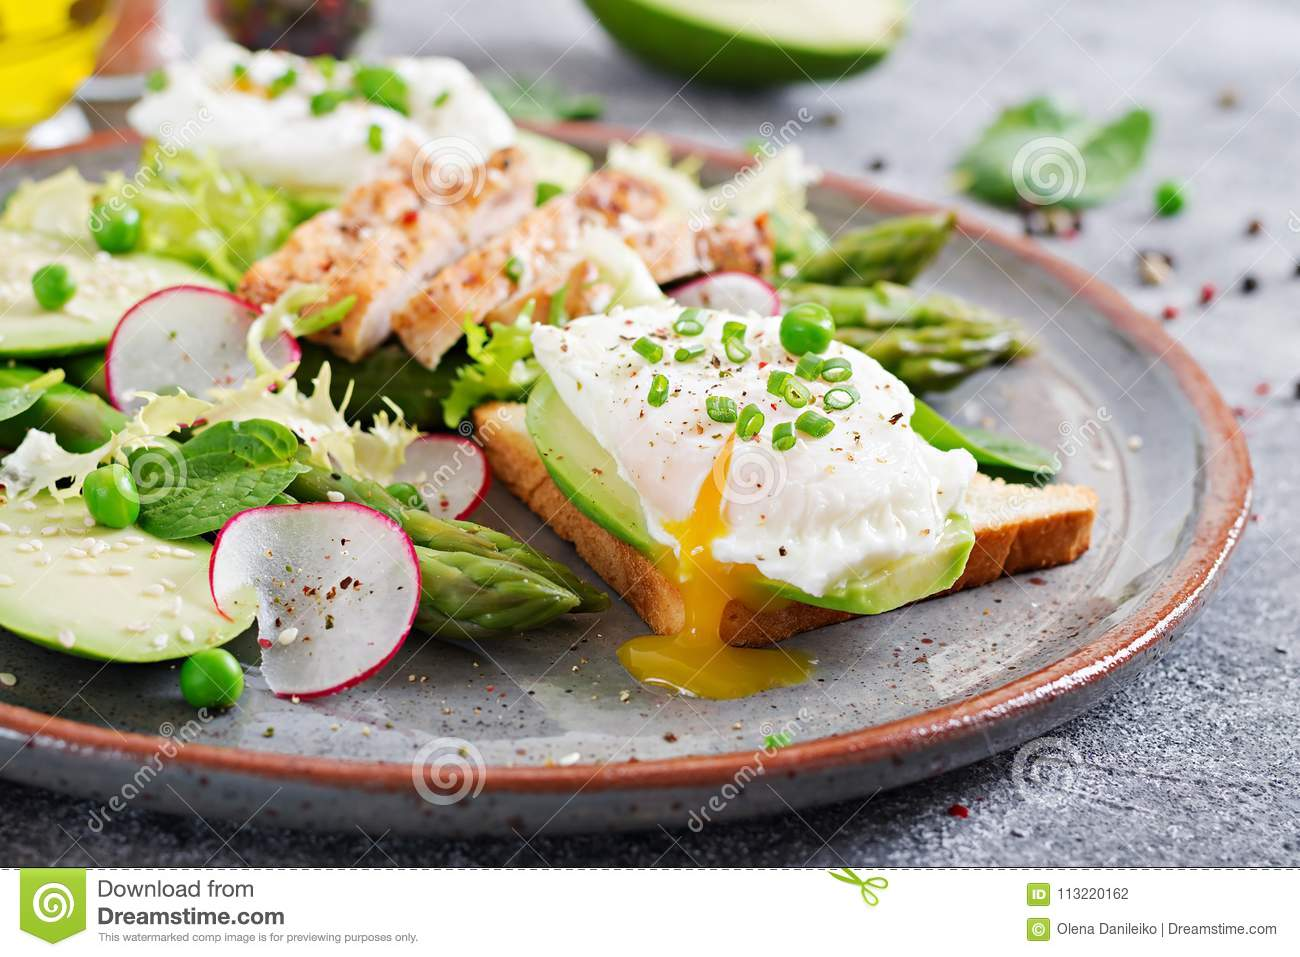 Eggs poached on toast with avocado, asparagus and chicken fillet on grill.